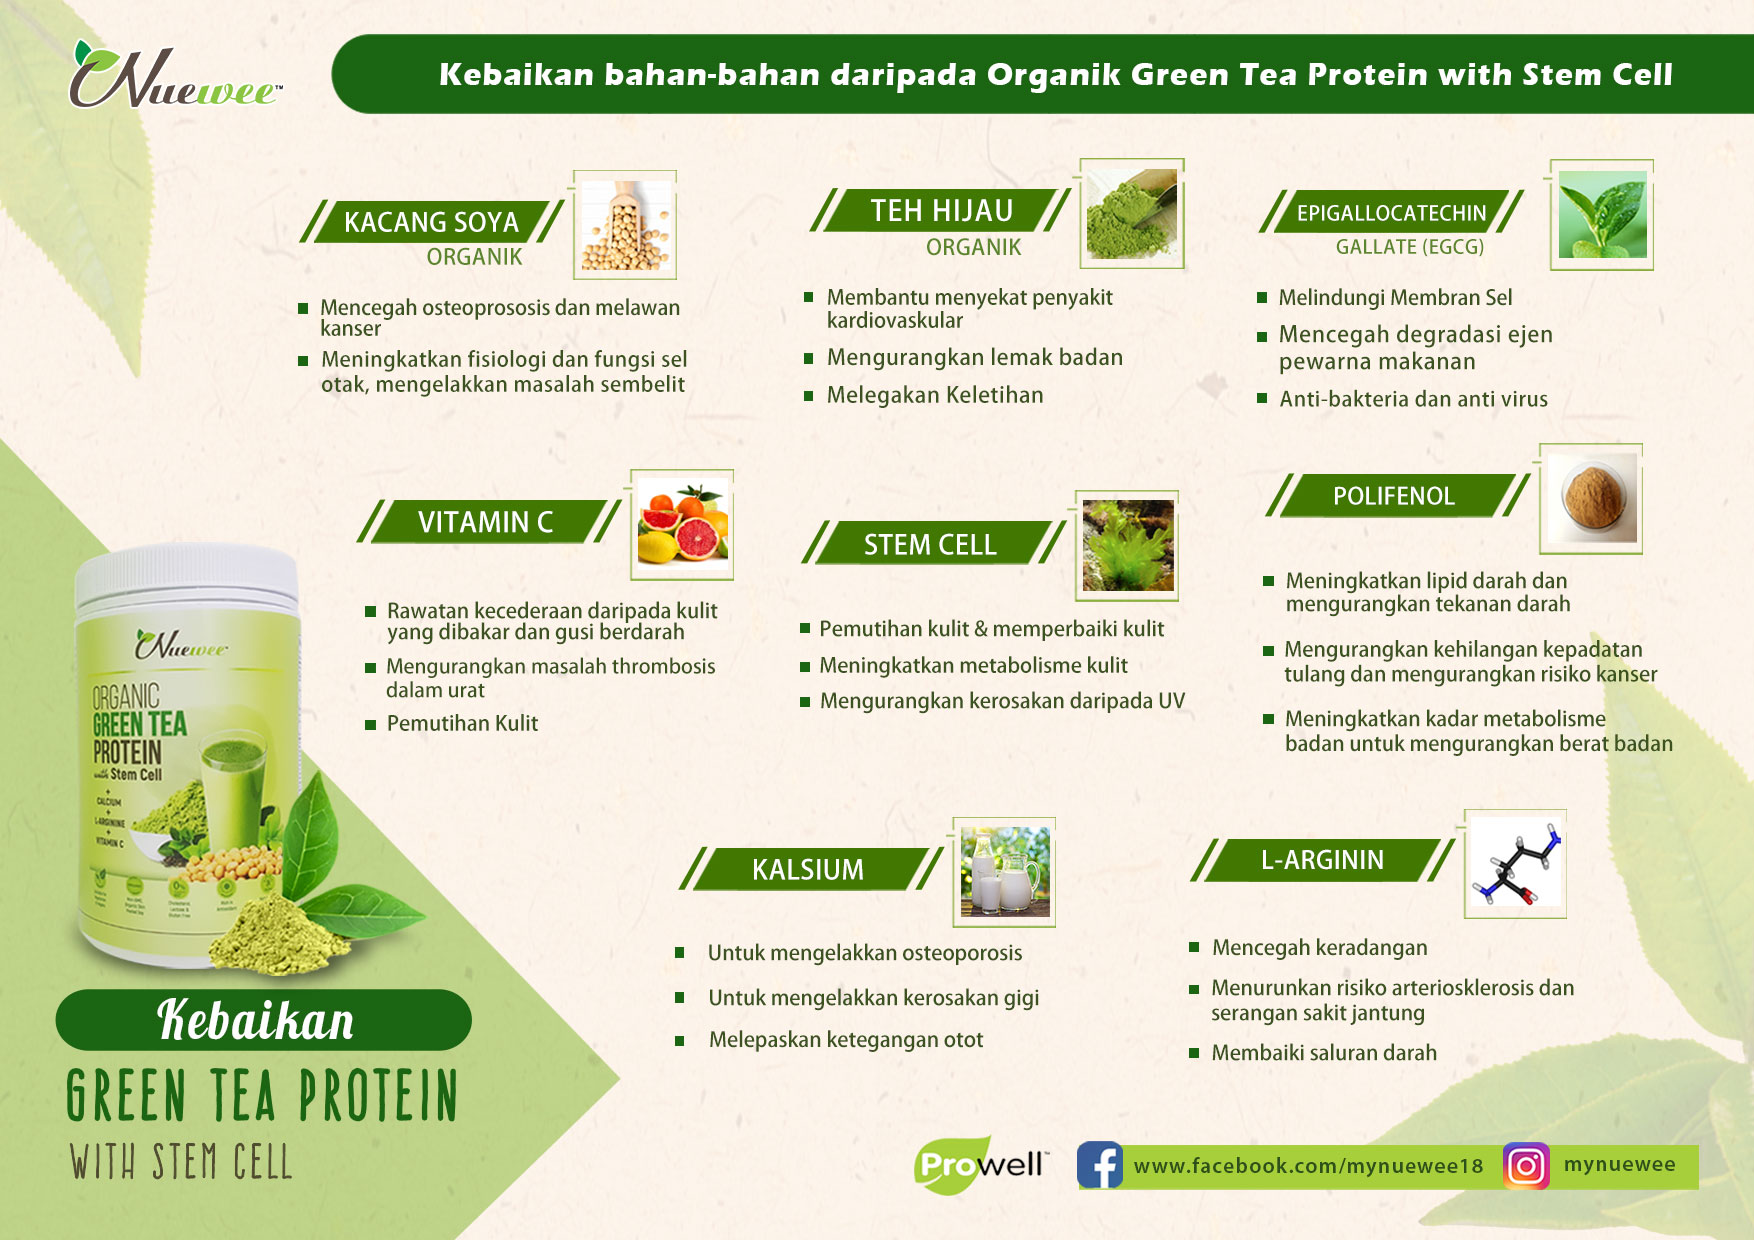 M ingredients of Nuewee Organic Green Tea Protein with Stem Cell.jpg